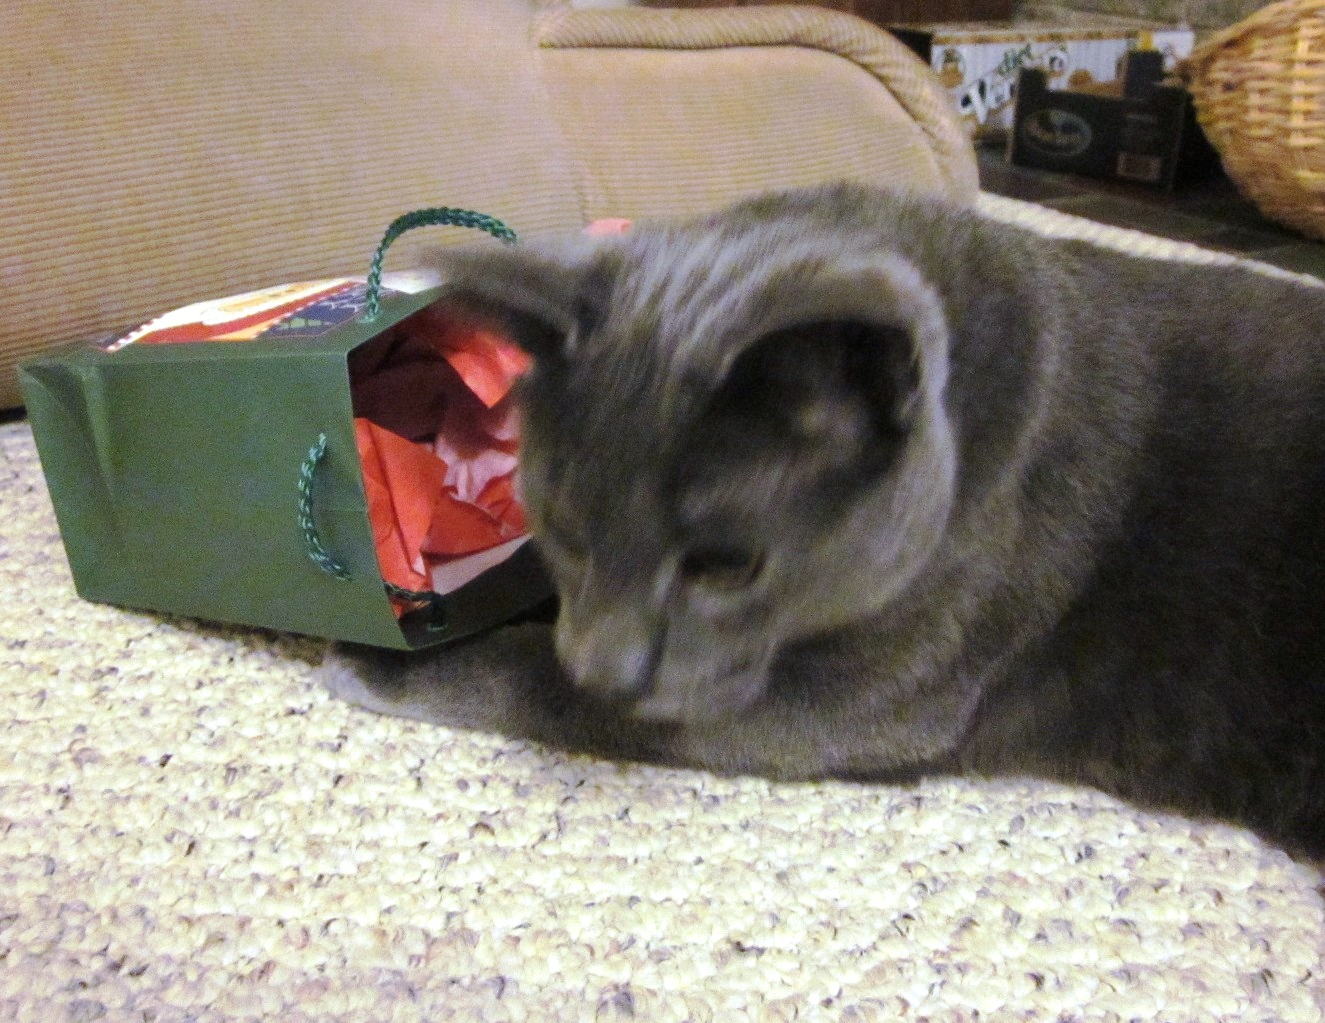 A Bag! And Crunchy Paper! And another Bag! And something inside THAT!